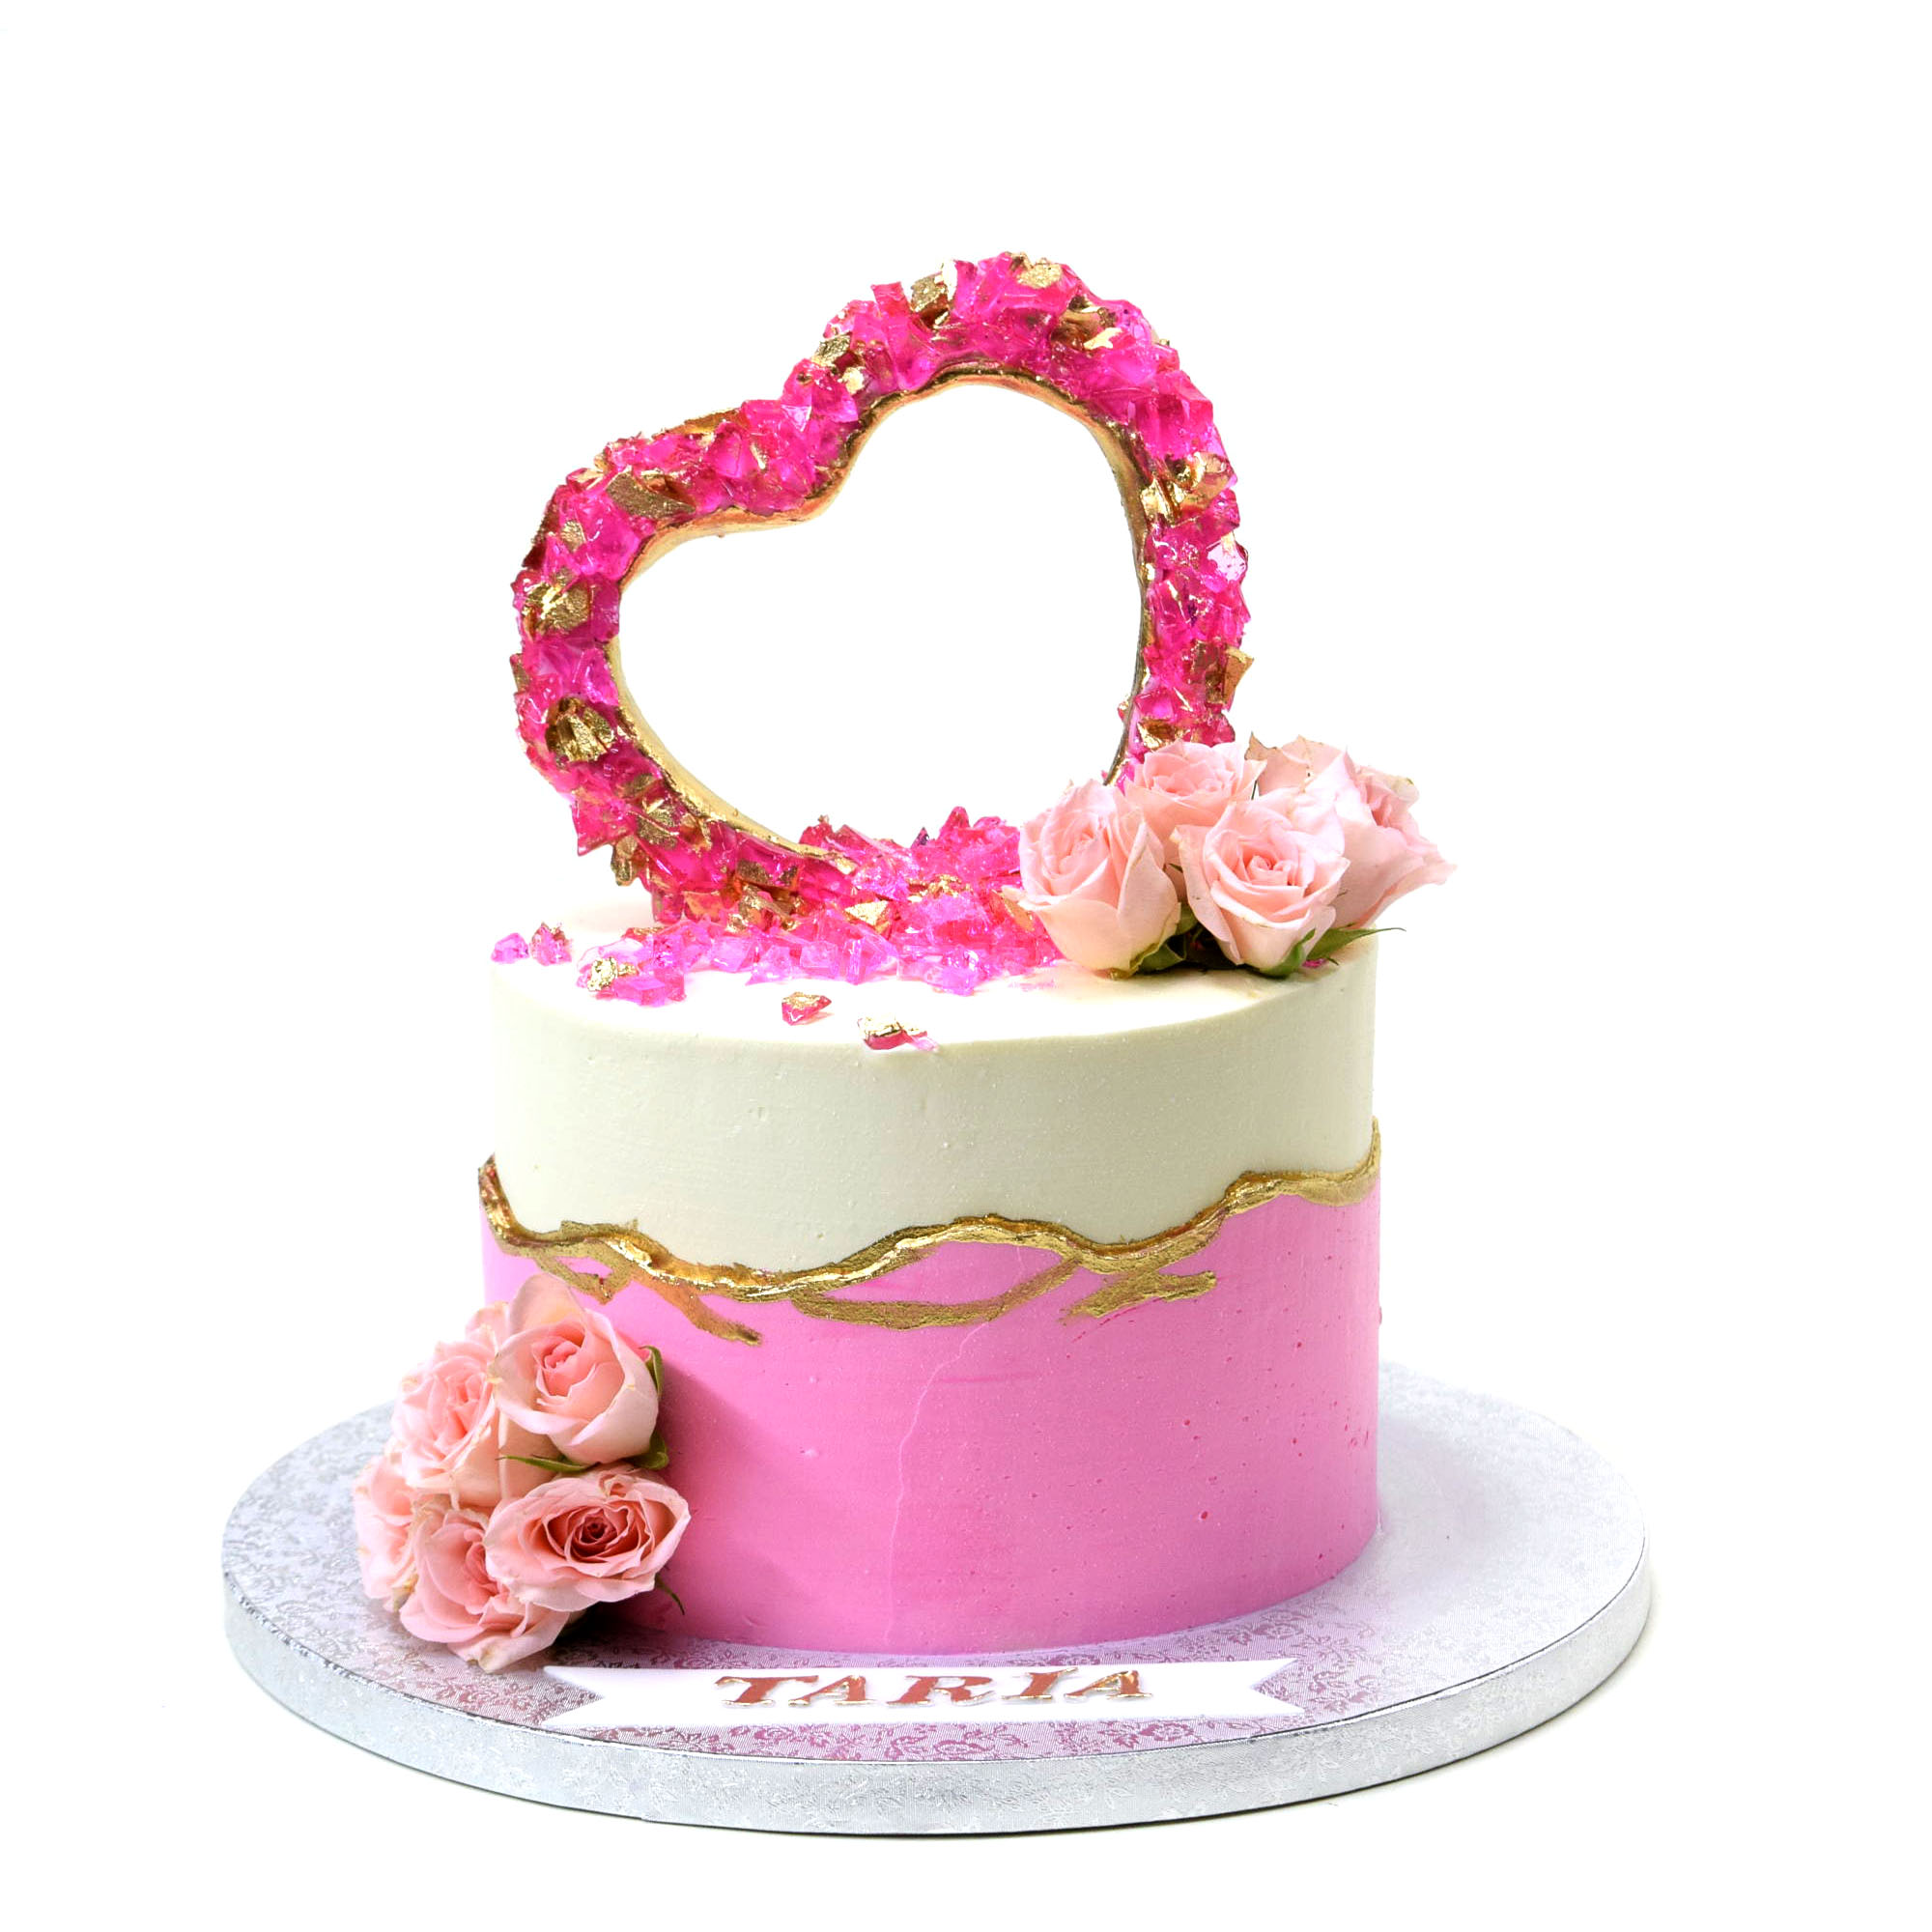 WHY ORDER CAKE ONLINE